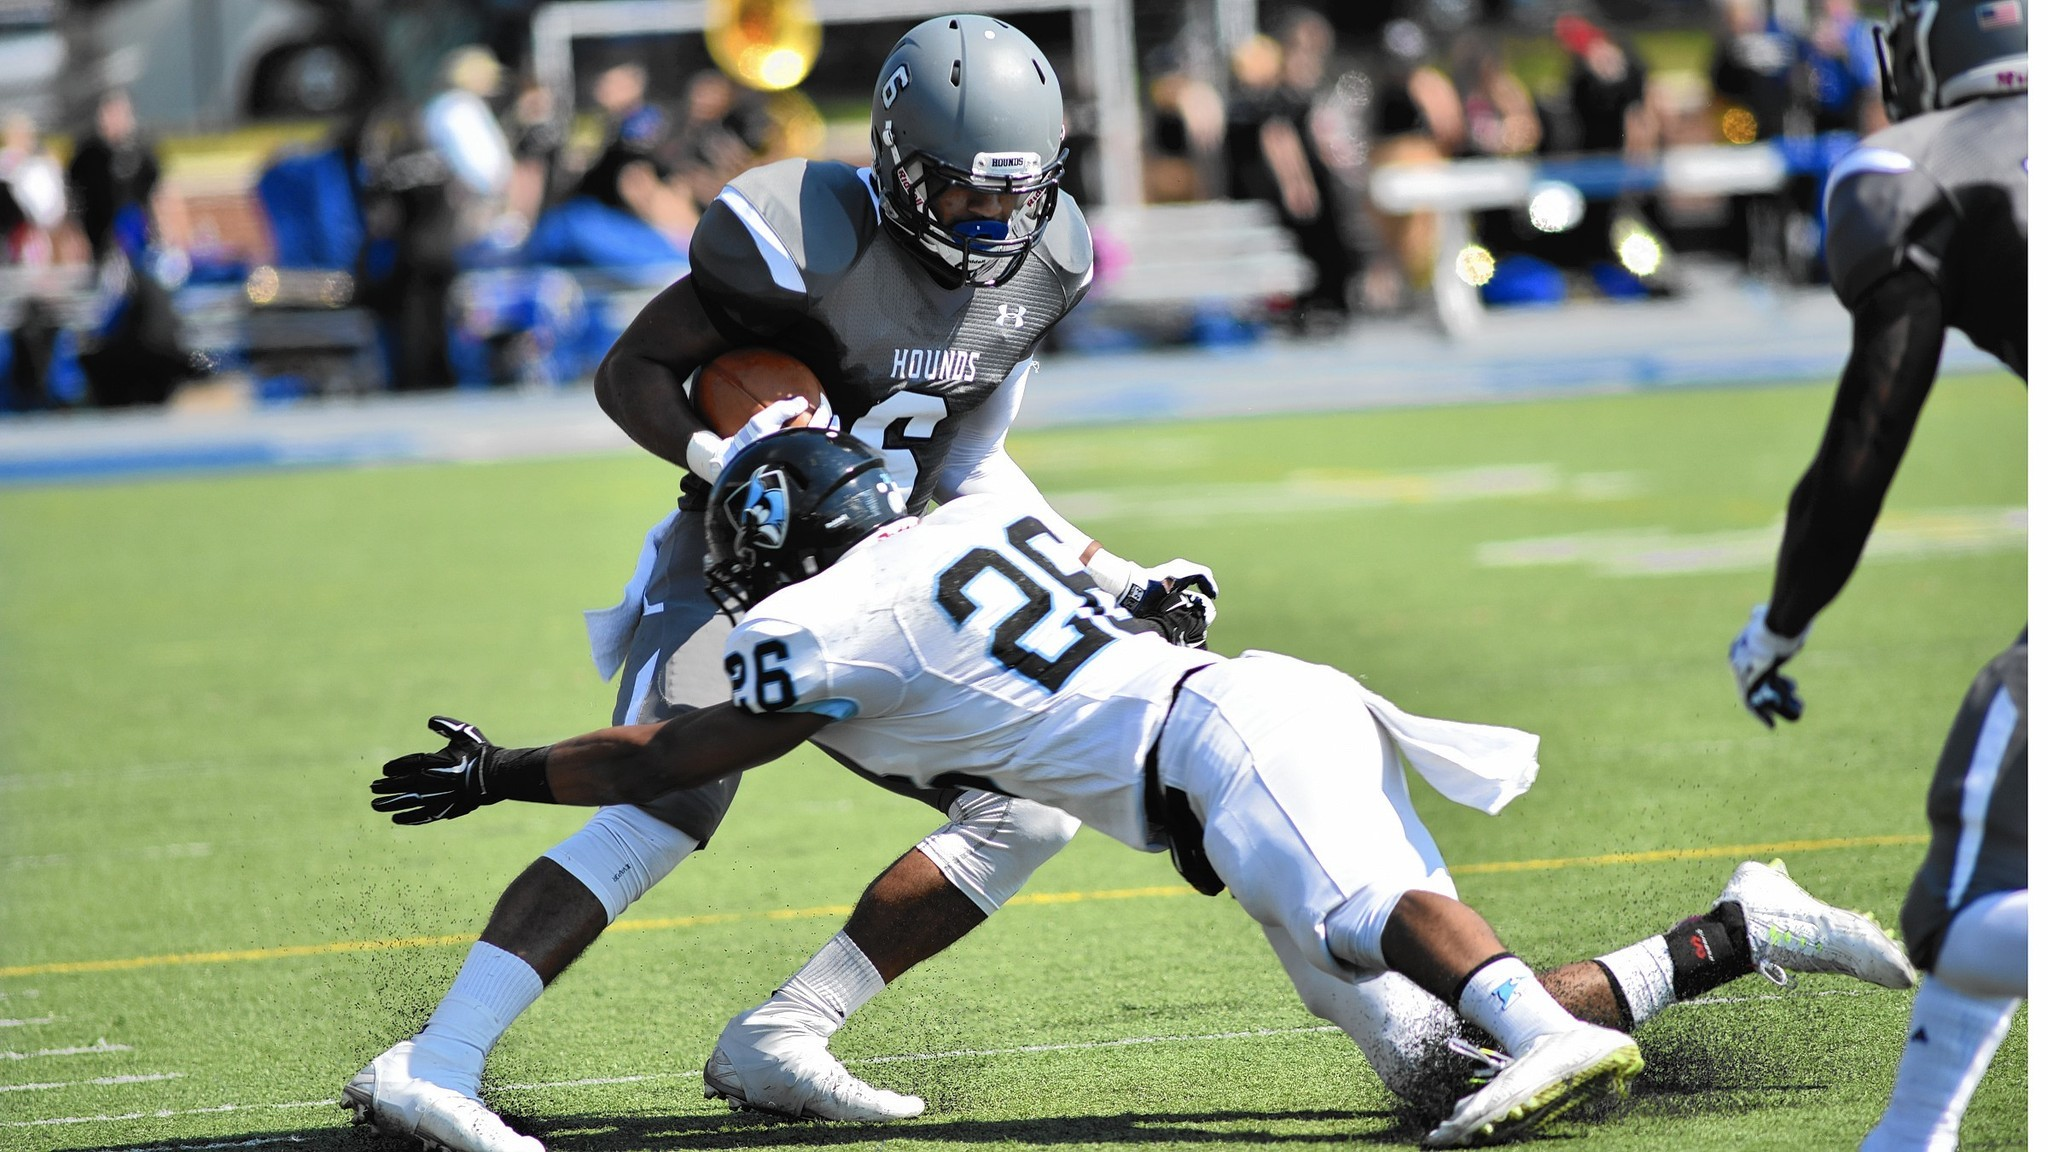 moravian football tied for 5th in south region in first 2015 ncaa